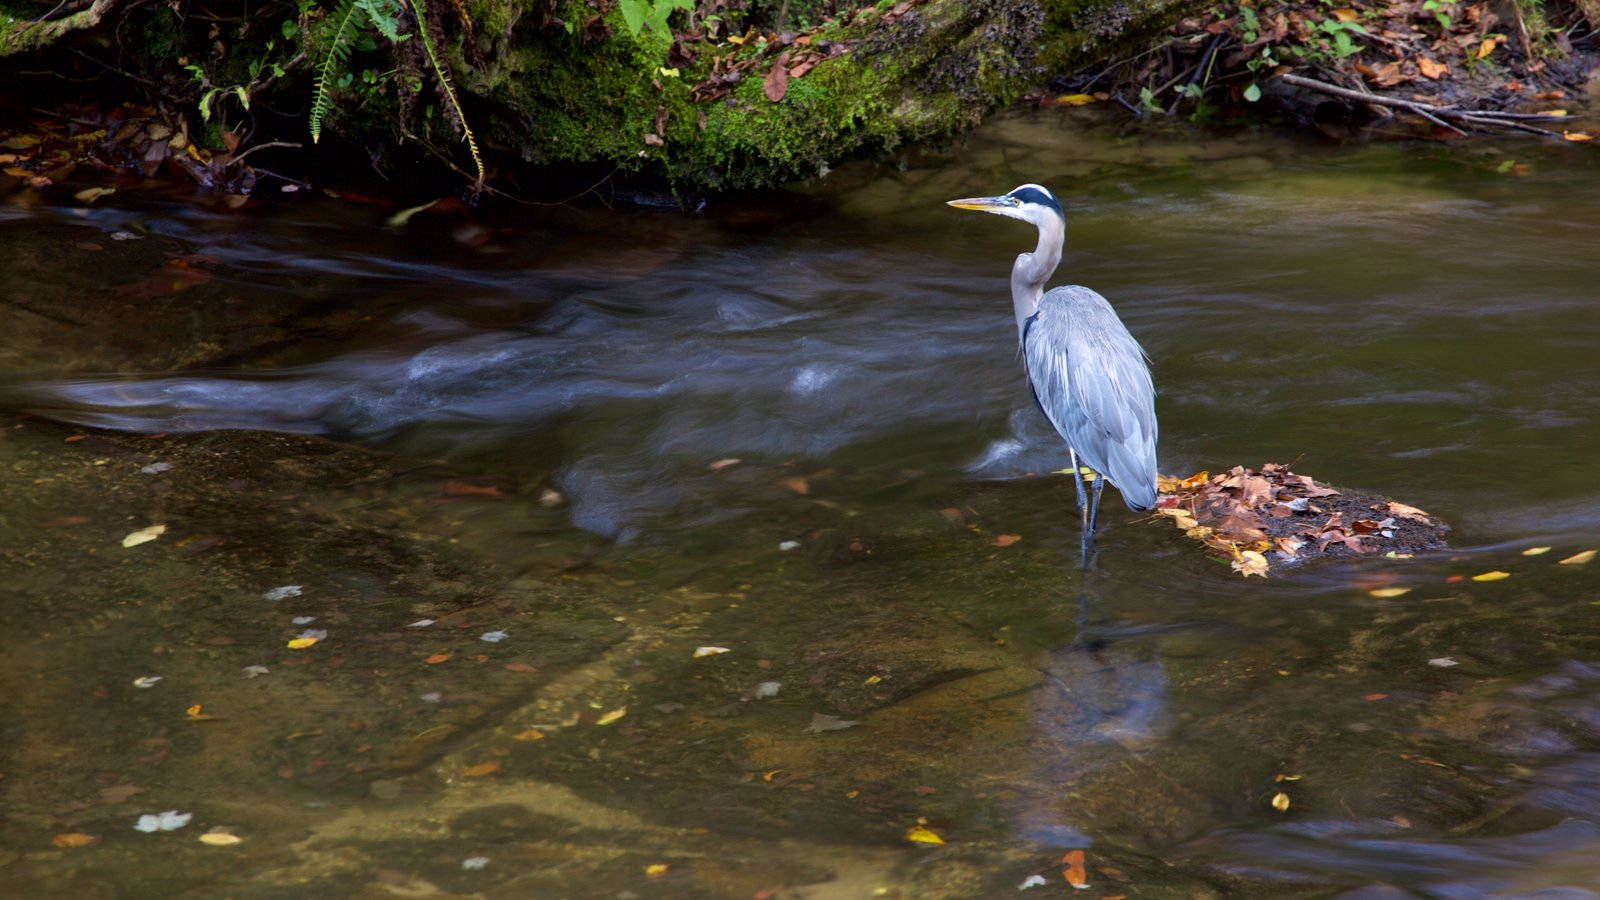 Great Smoky Mountains National Park featuring bird life and a river or creek